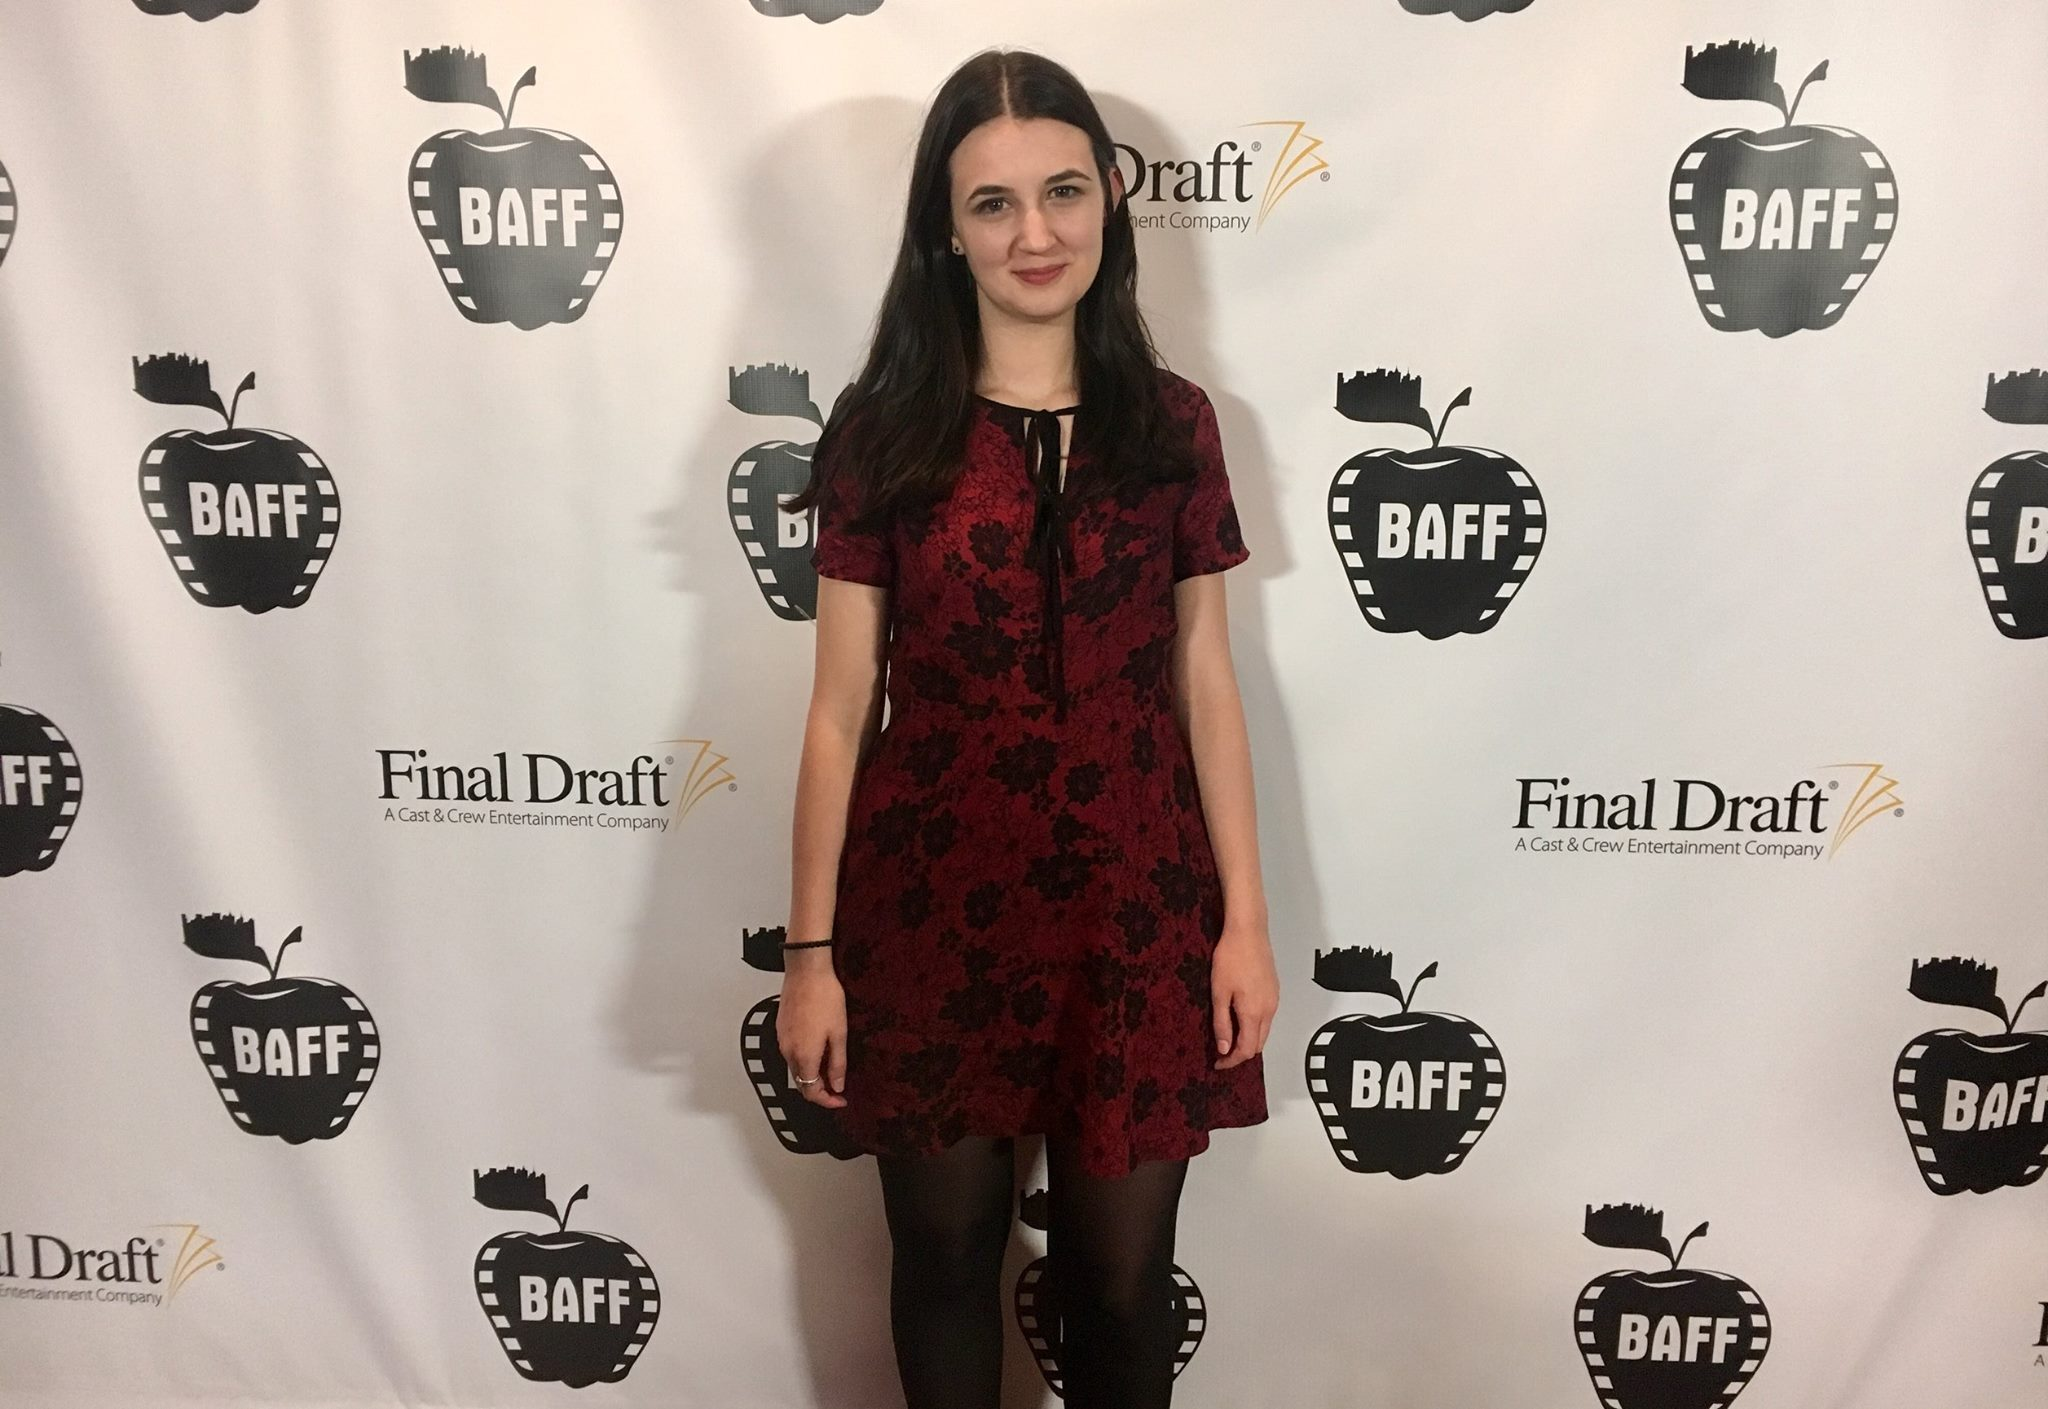 At the Big Apple Film Festival